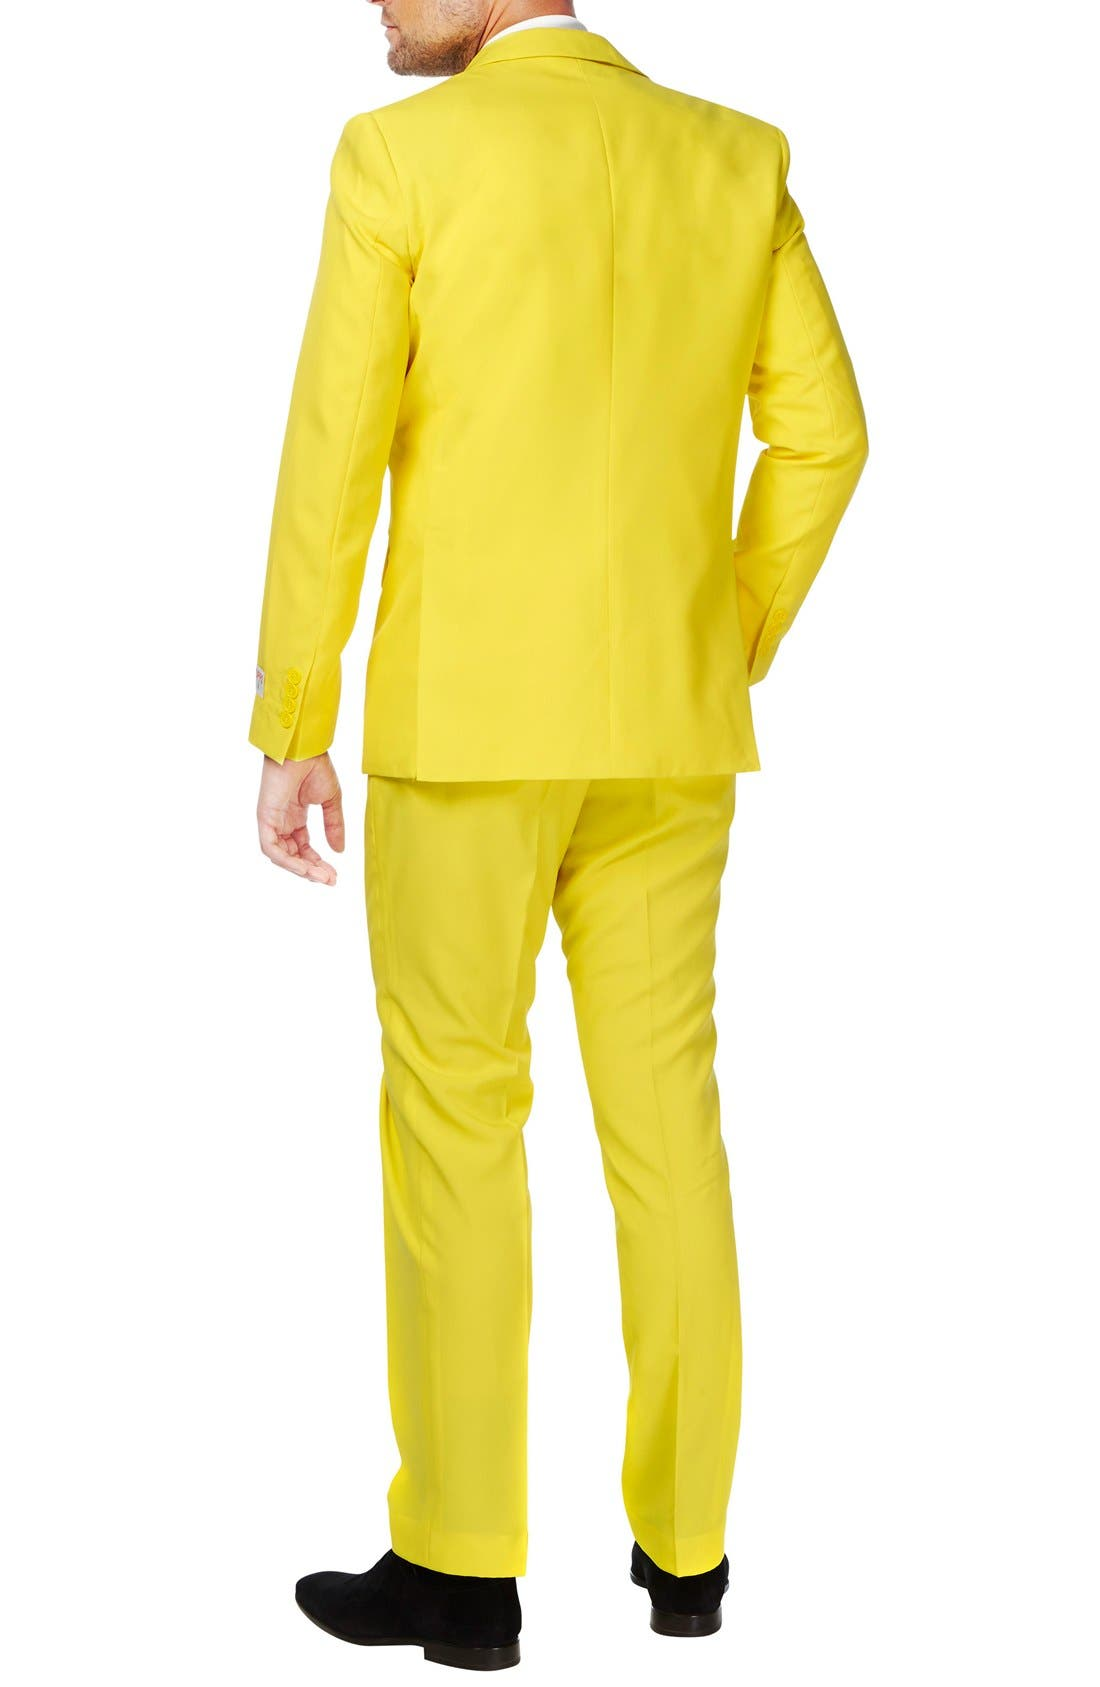 'Yellow Fellow' Trim Fit Two-Piece Suit with Tie,                             Alternate thumbnail 2, color,                             Yellow